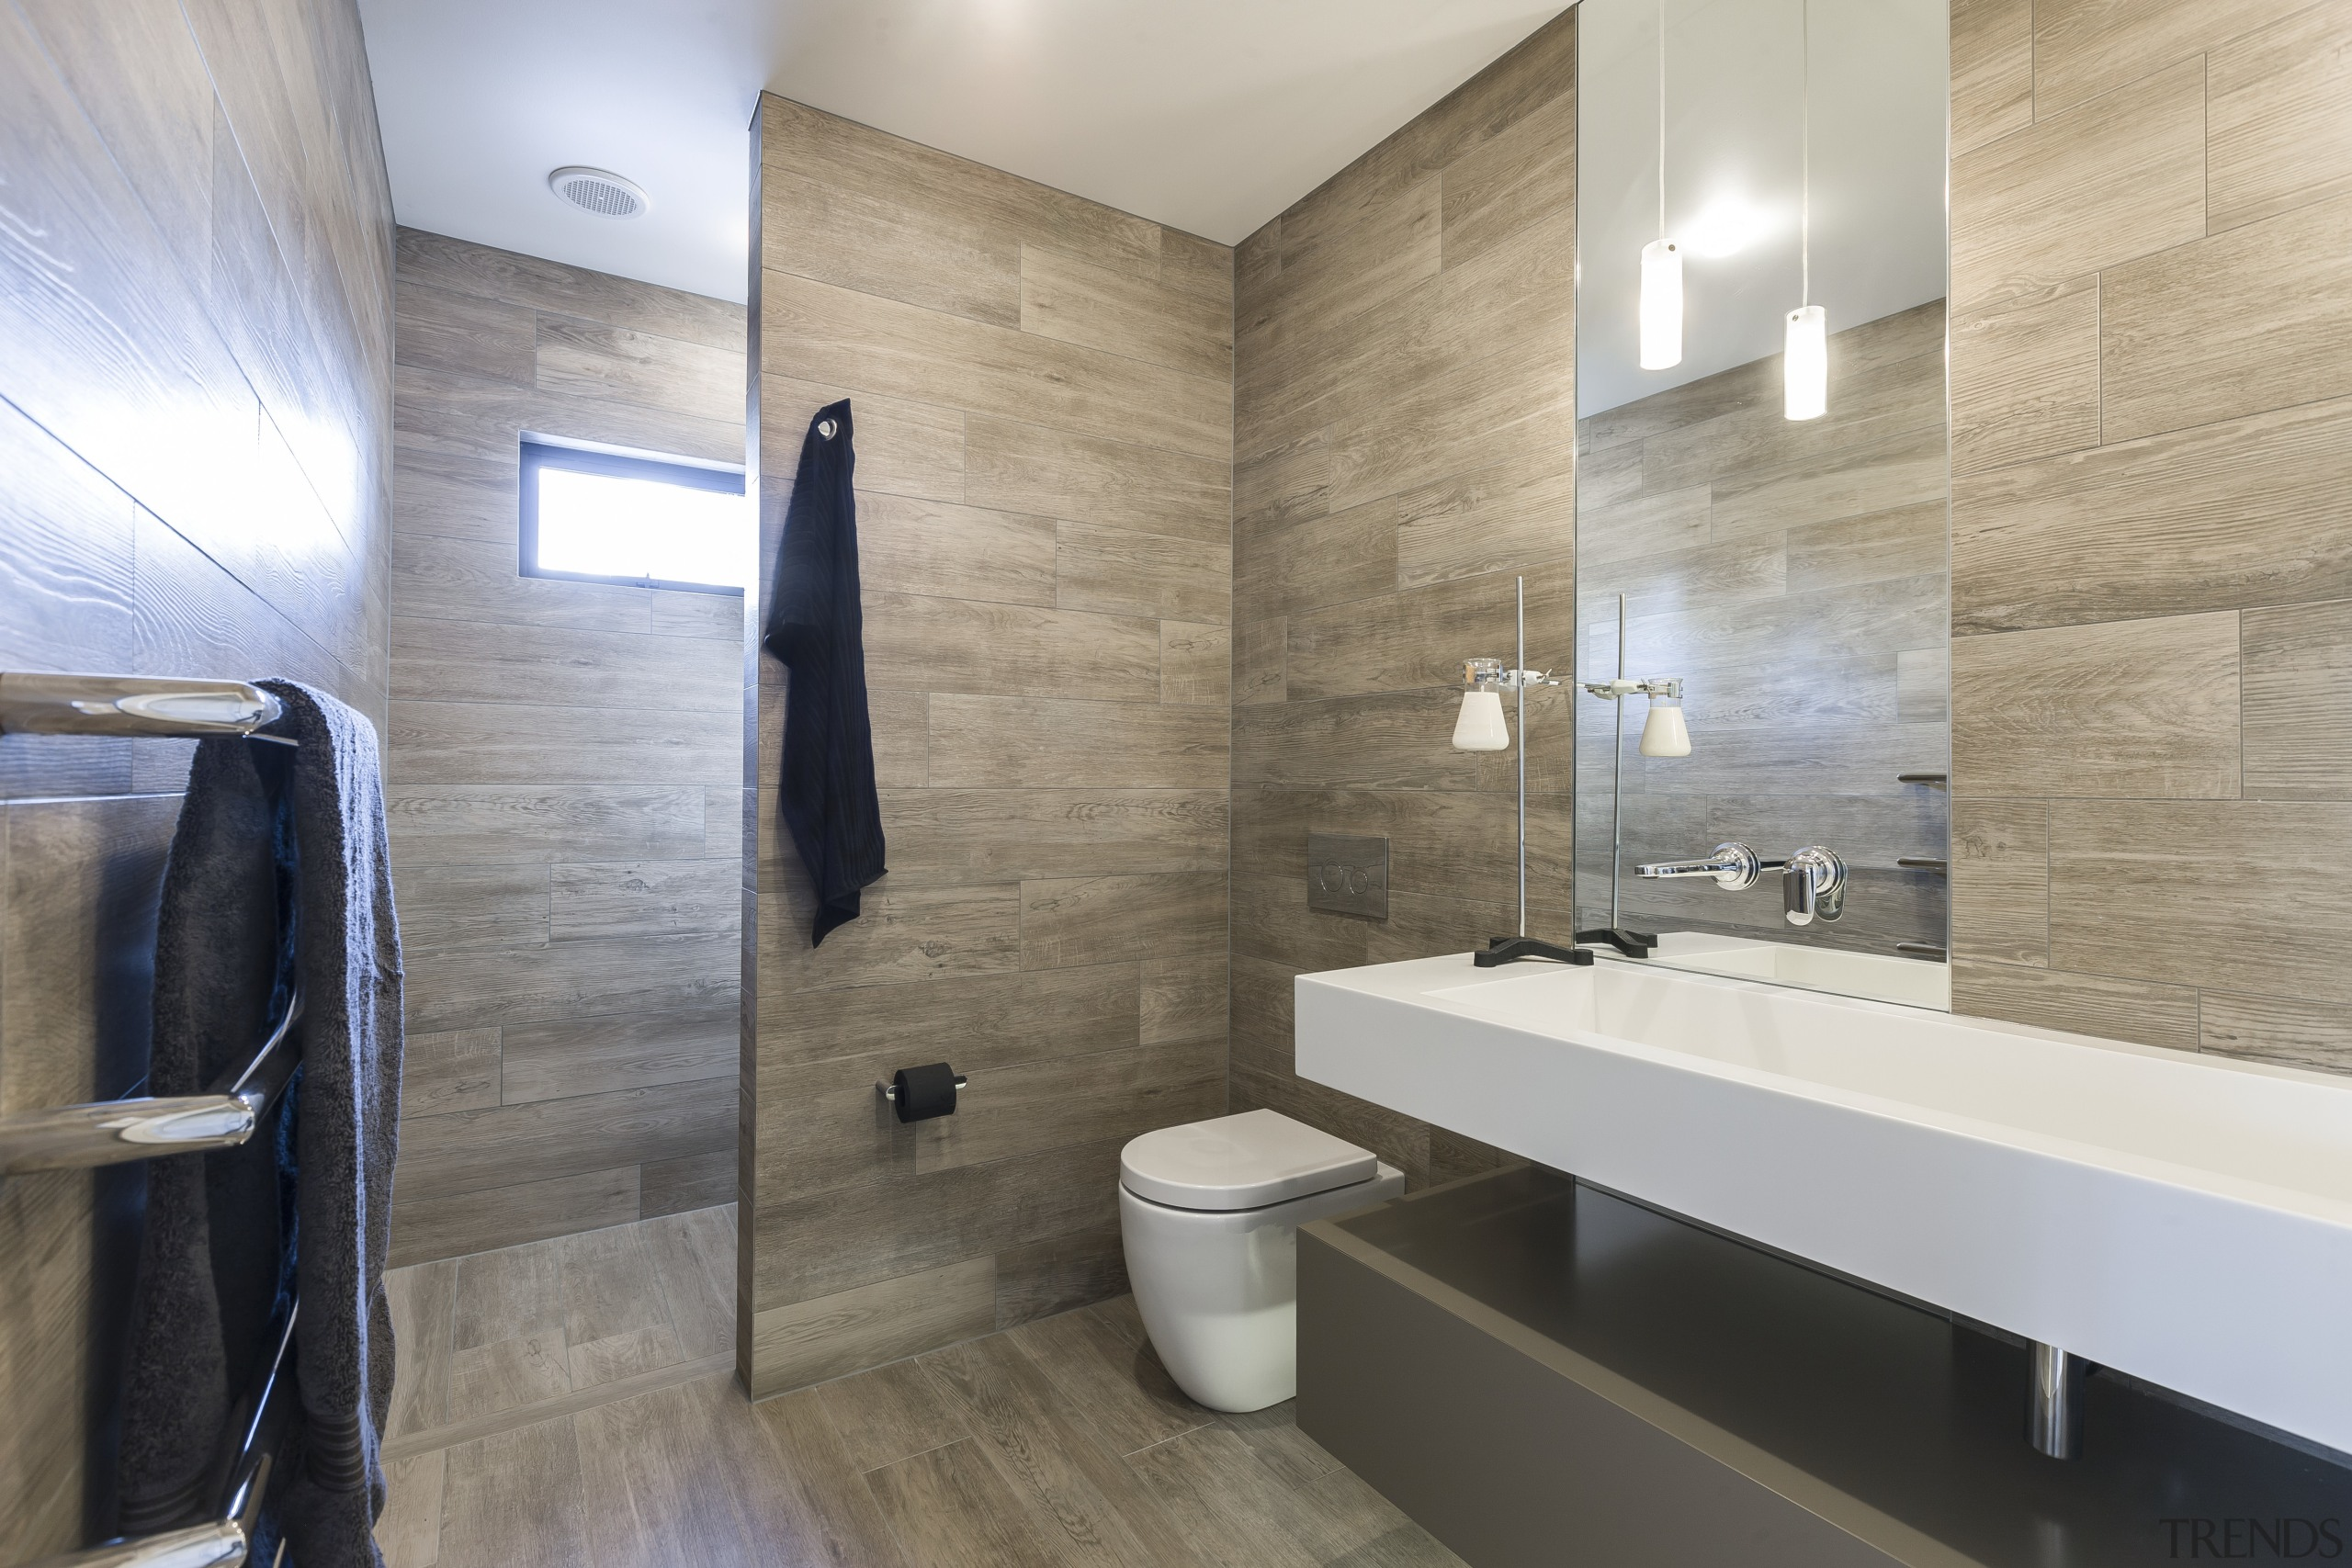 Timber plank tiles create an organic, natural feel architecture, bathroom, floor, flooring, home, interior design, property, real estate, room, tile, wall, gray